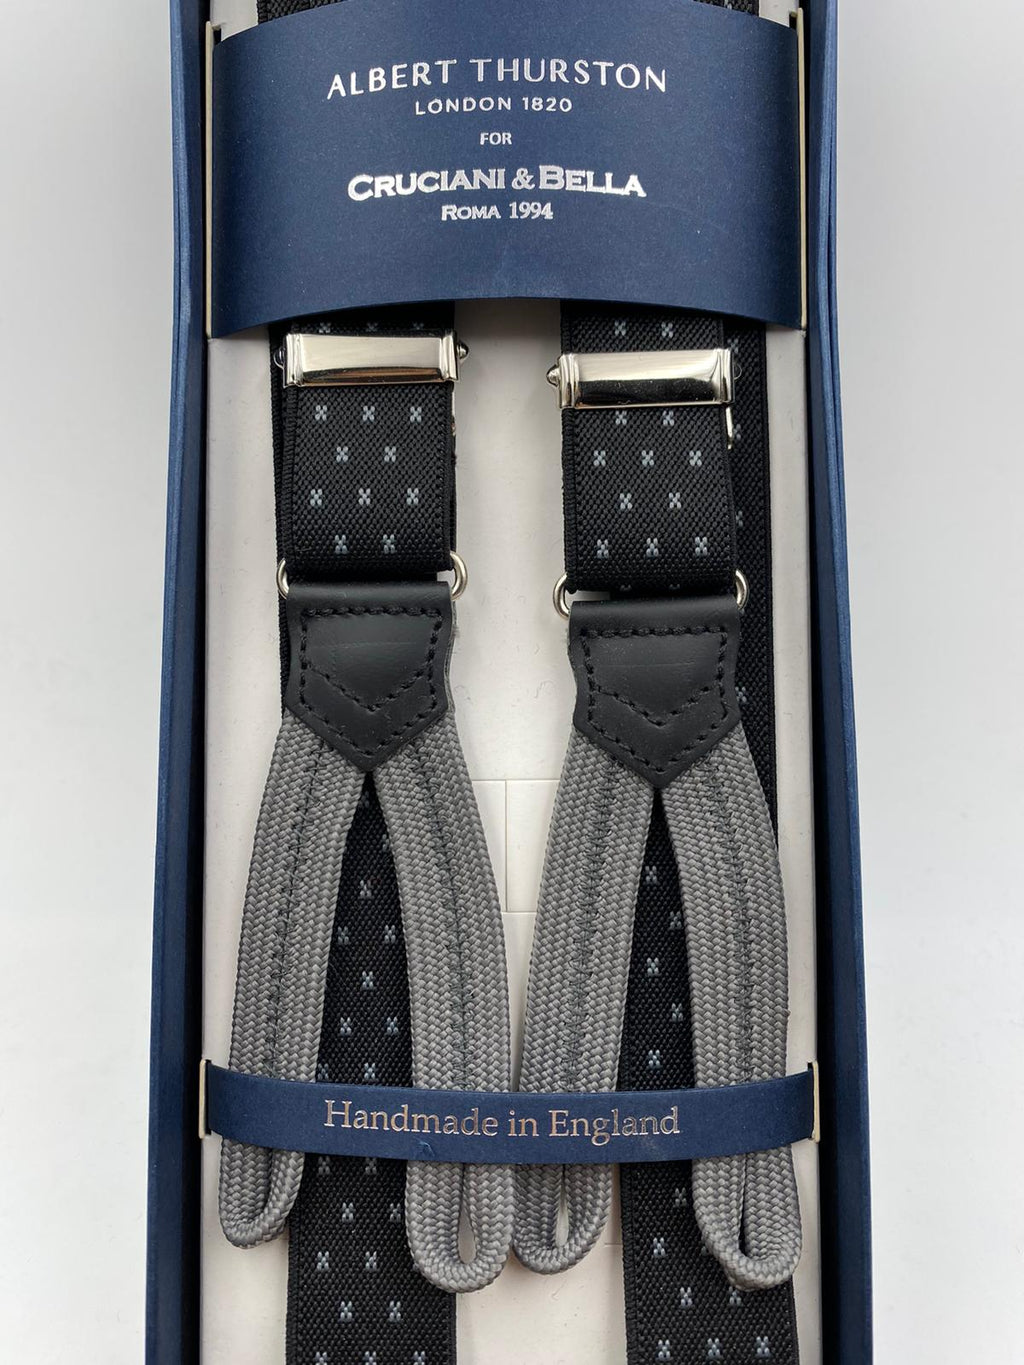 Albert Thurston for Cruciani & Bella Made in England Adjustable Sizing 25 mm elastic braces Black and Grey Motif Braid ends Y-Shaped Nickel Fittings Size: L #4266